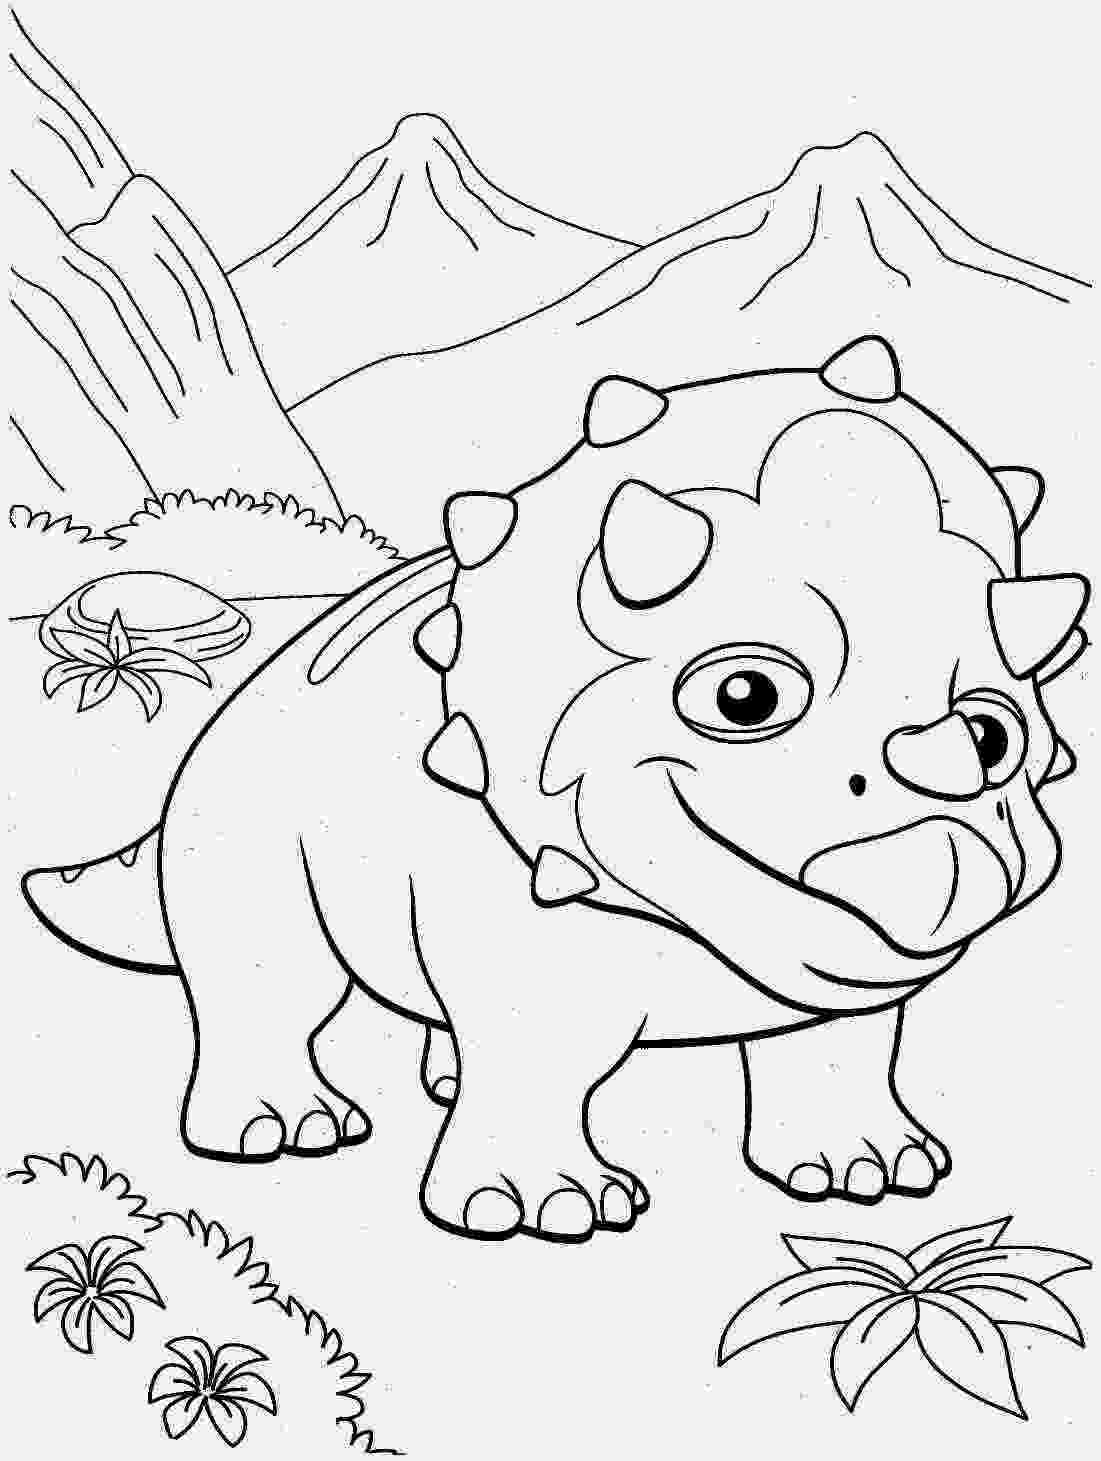 printable dinosaur pictures to color dinosaur coloring pages free printable pictures coloring printable dinosaur color to pictures